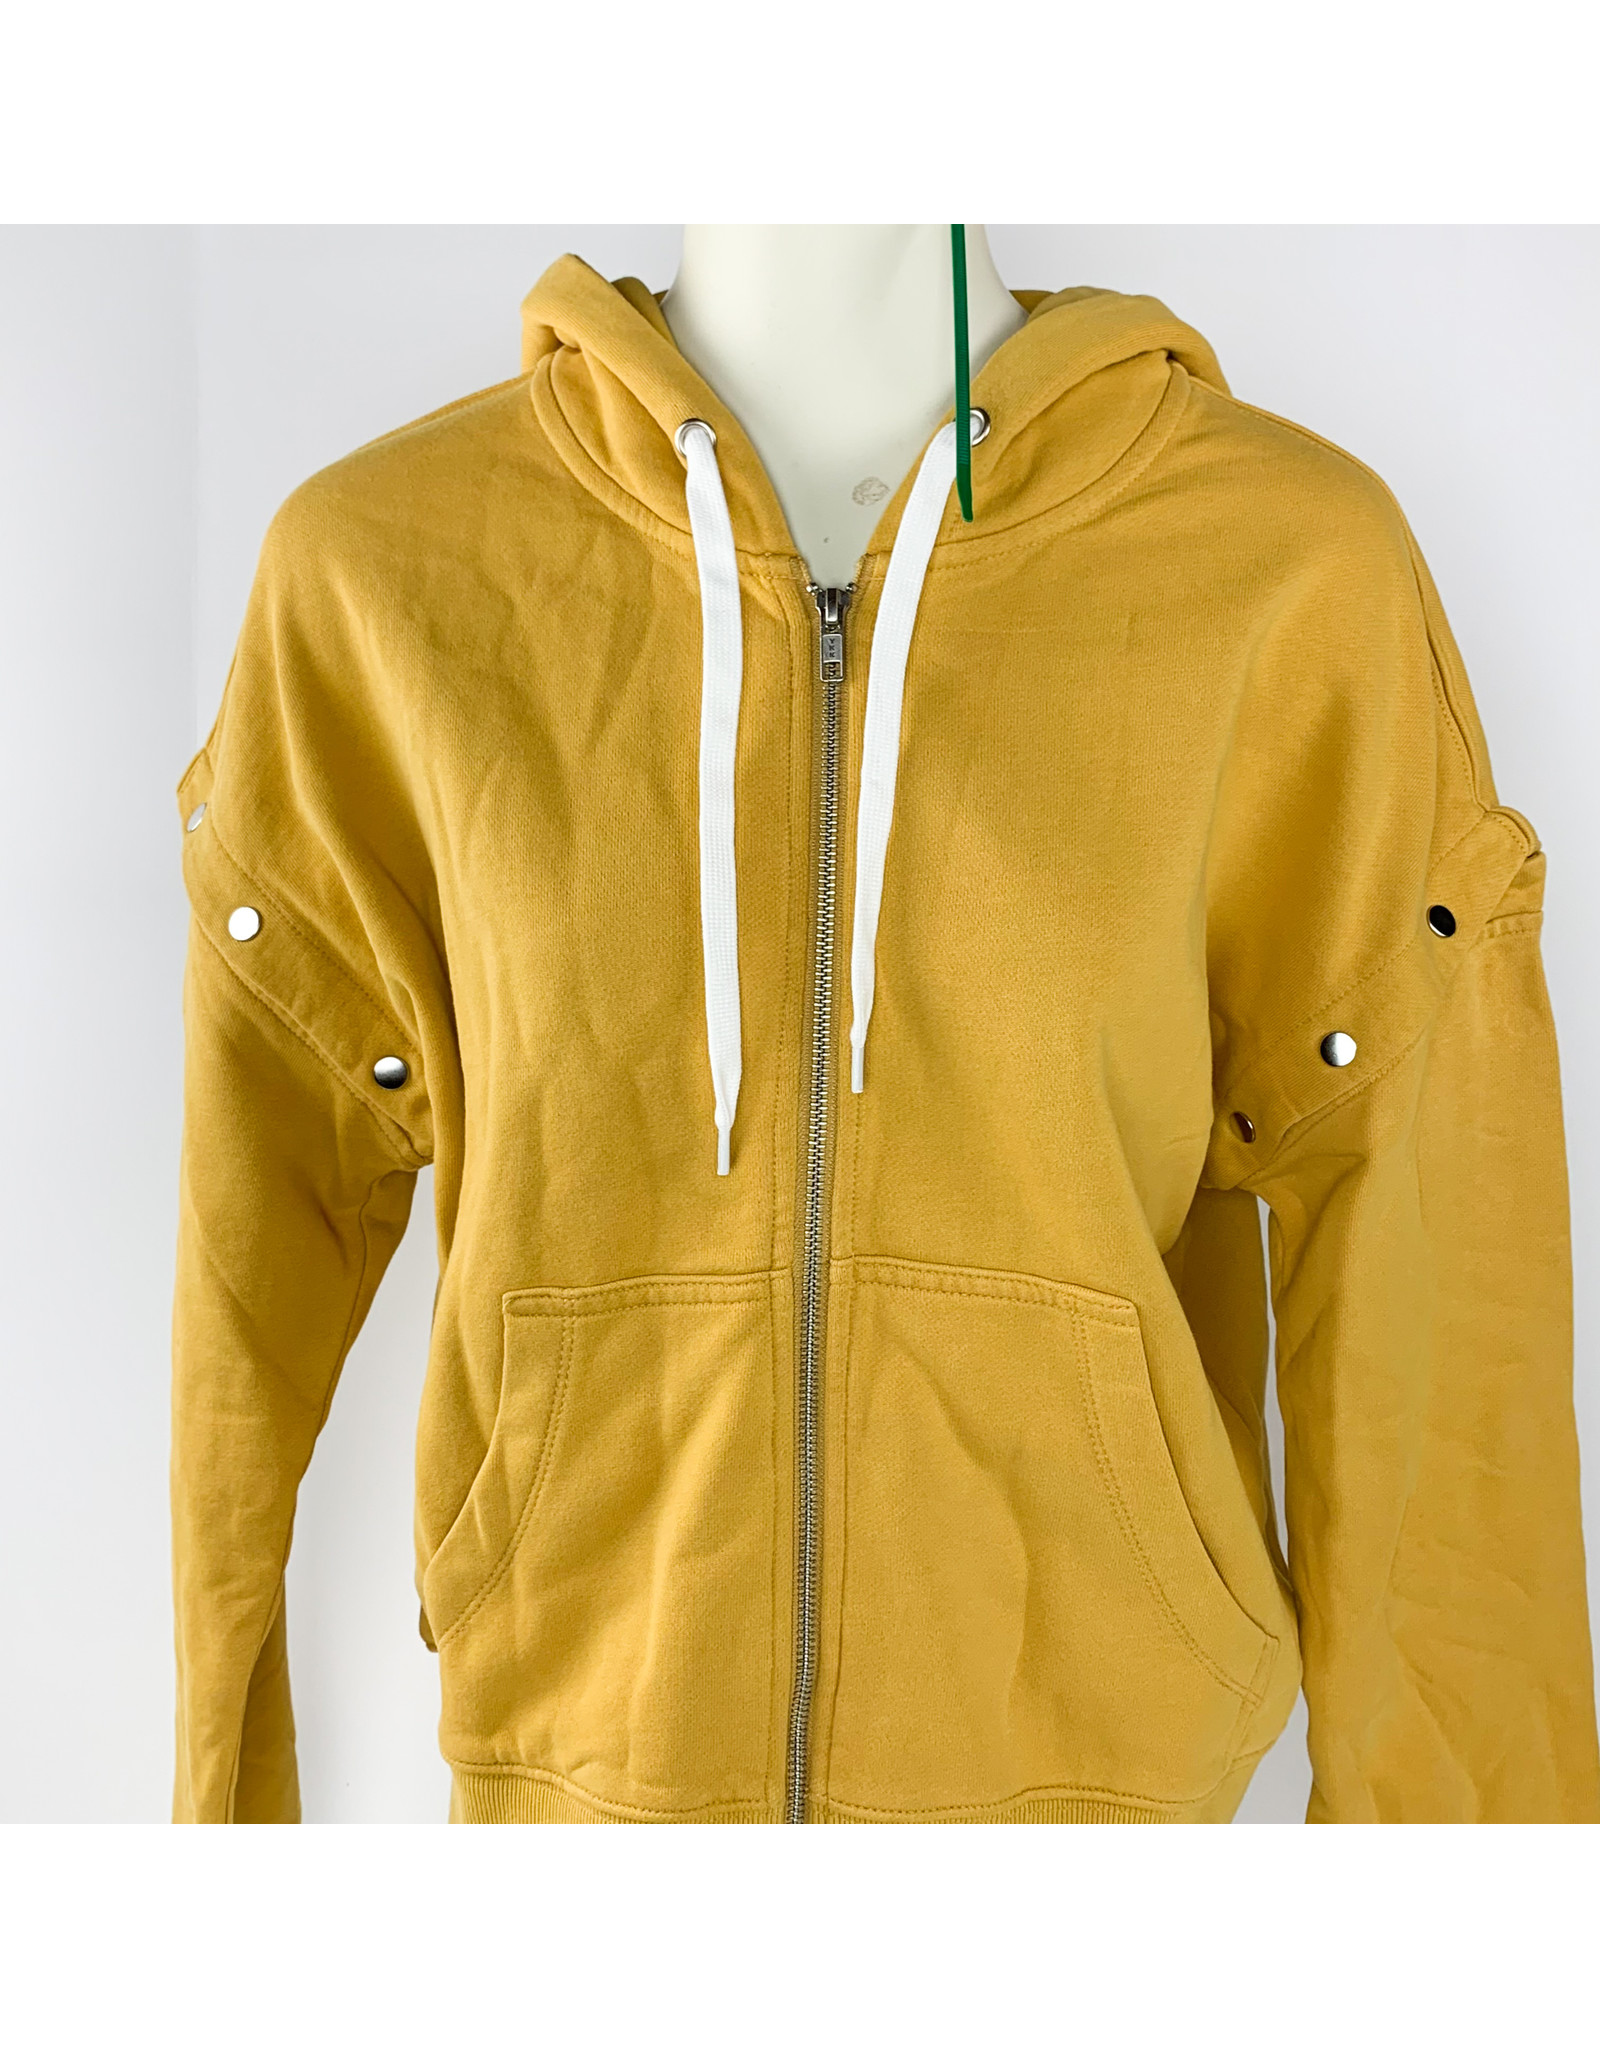 Kut from the Cloth Madelyn Zip Up Hoodie - Mustard